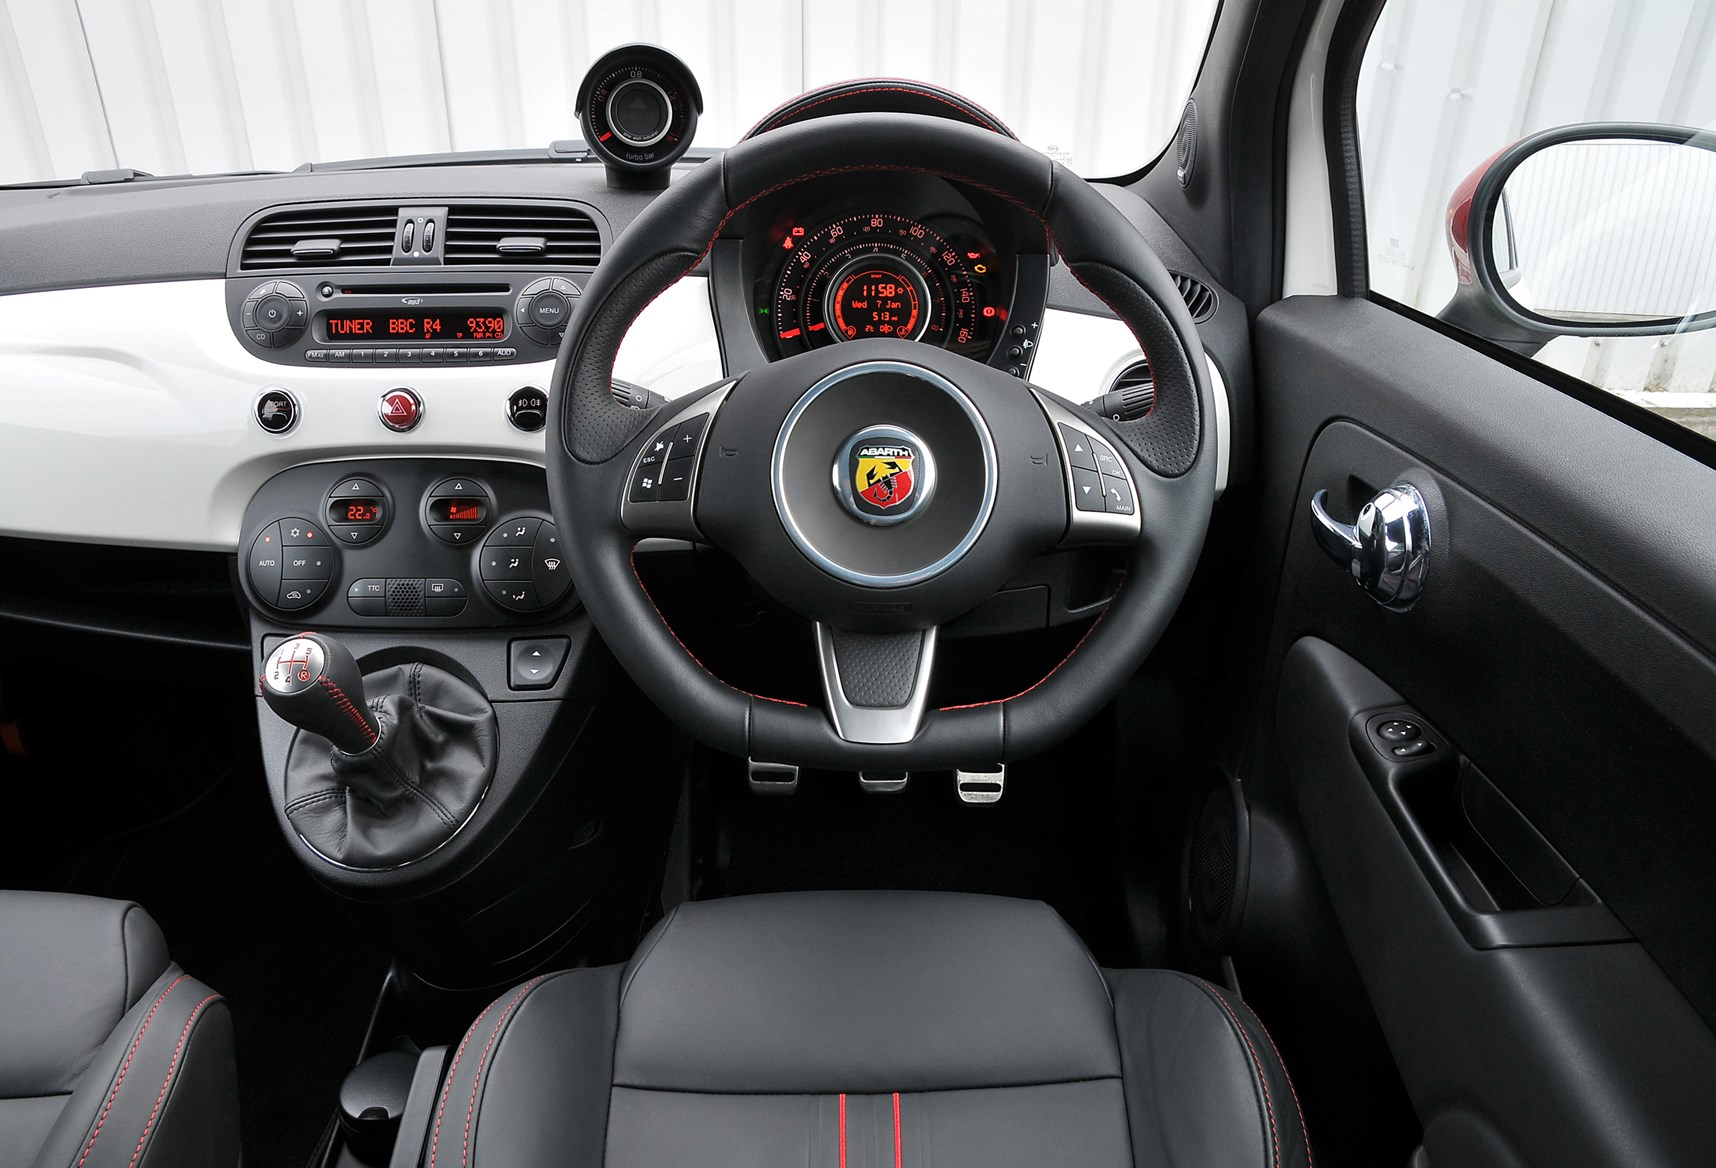 specs size models competizione performance abarth engine data laptimes fiat